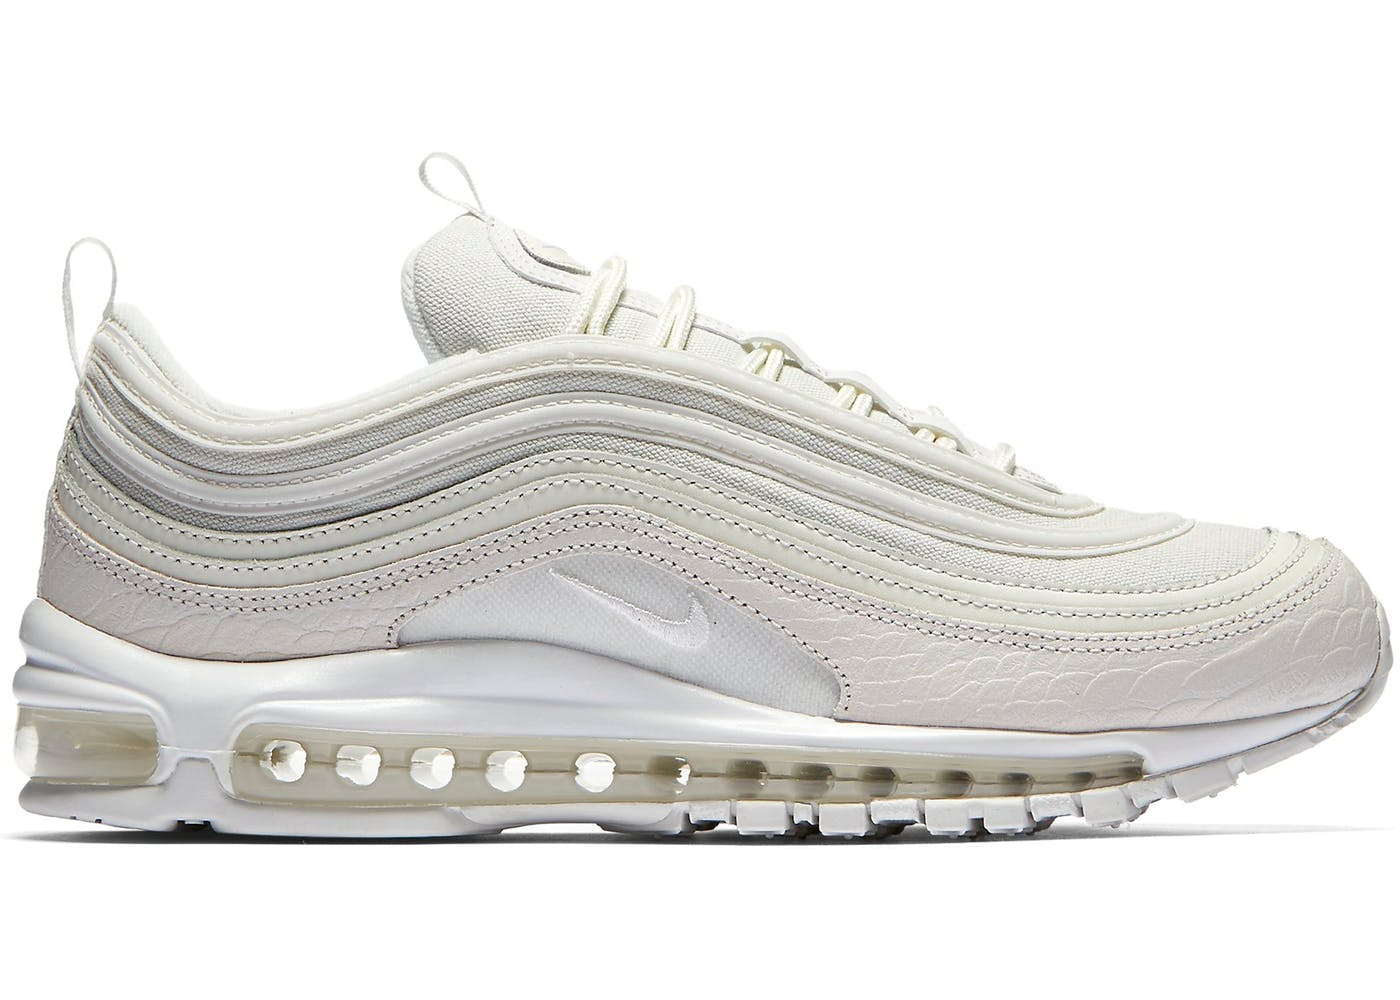 Air Max 97 Summit White